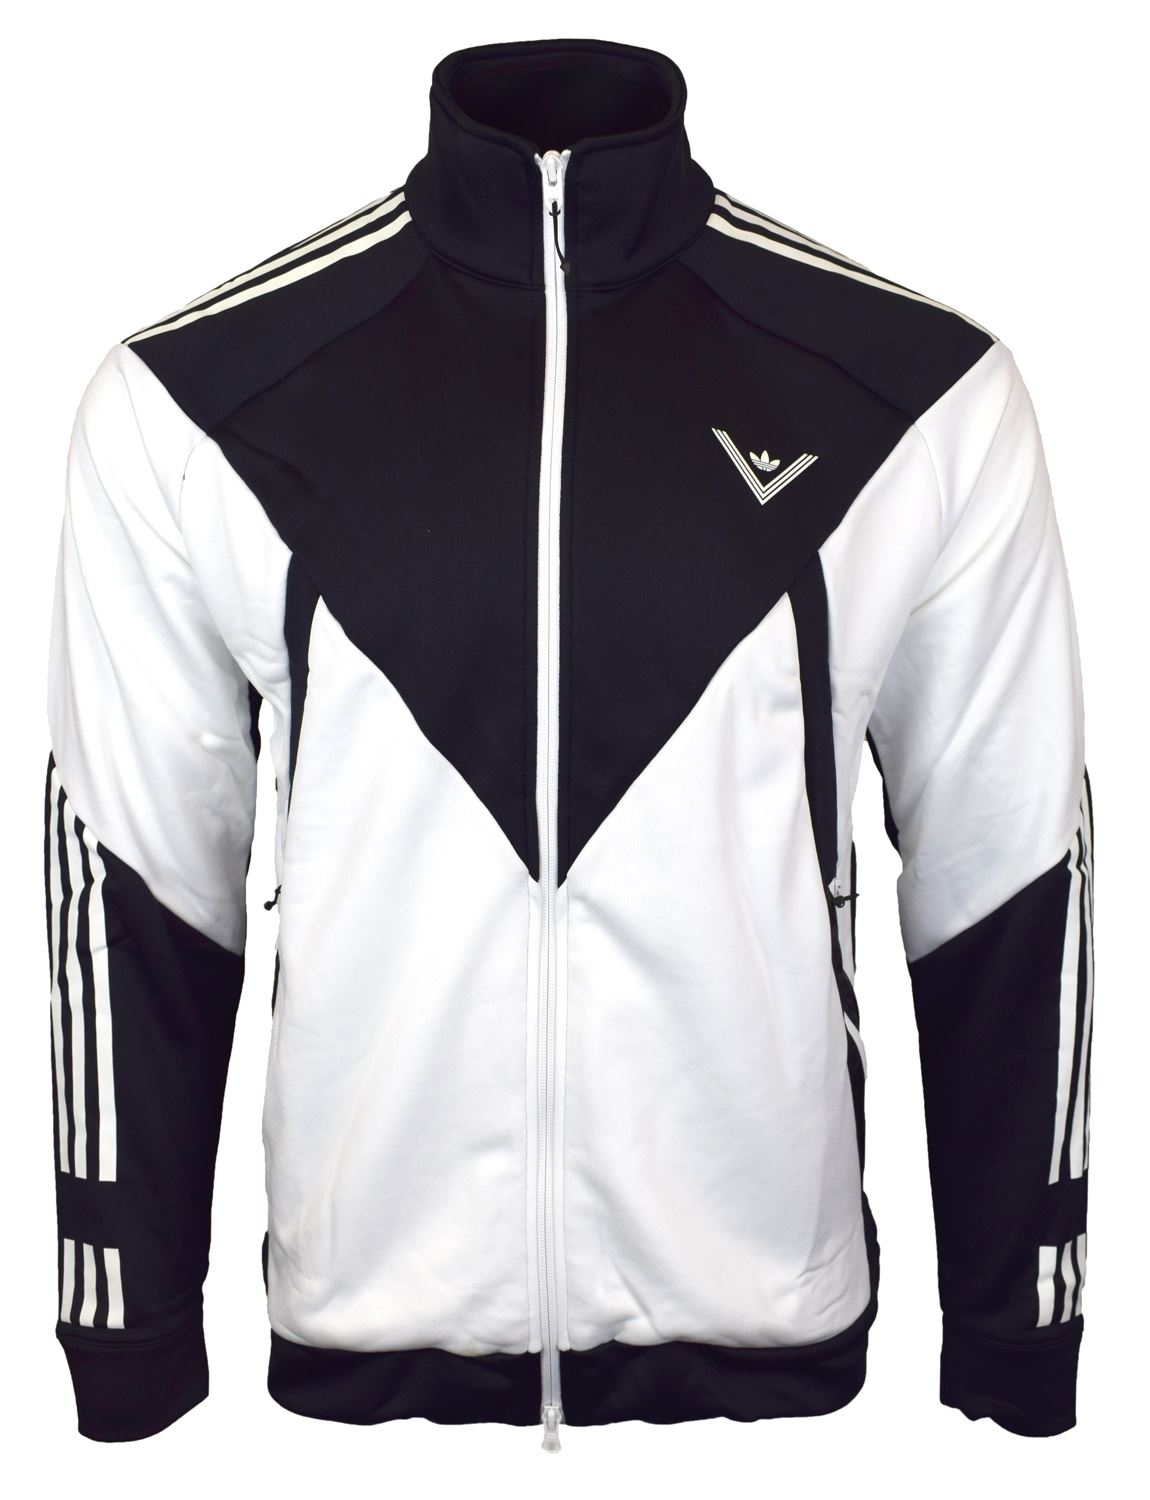 Details about Adidas White Mountaineering Black Track Top BQ4127